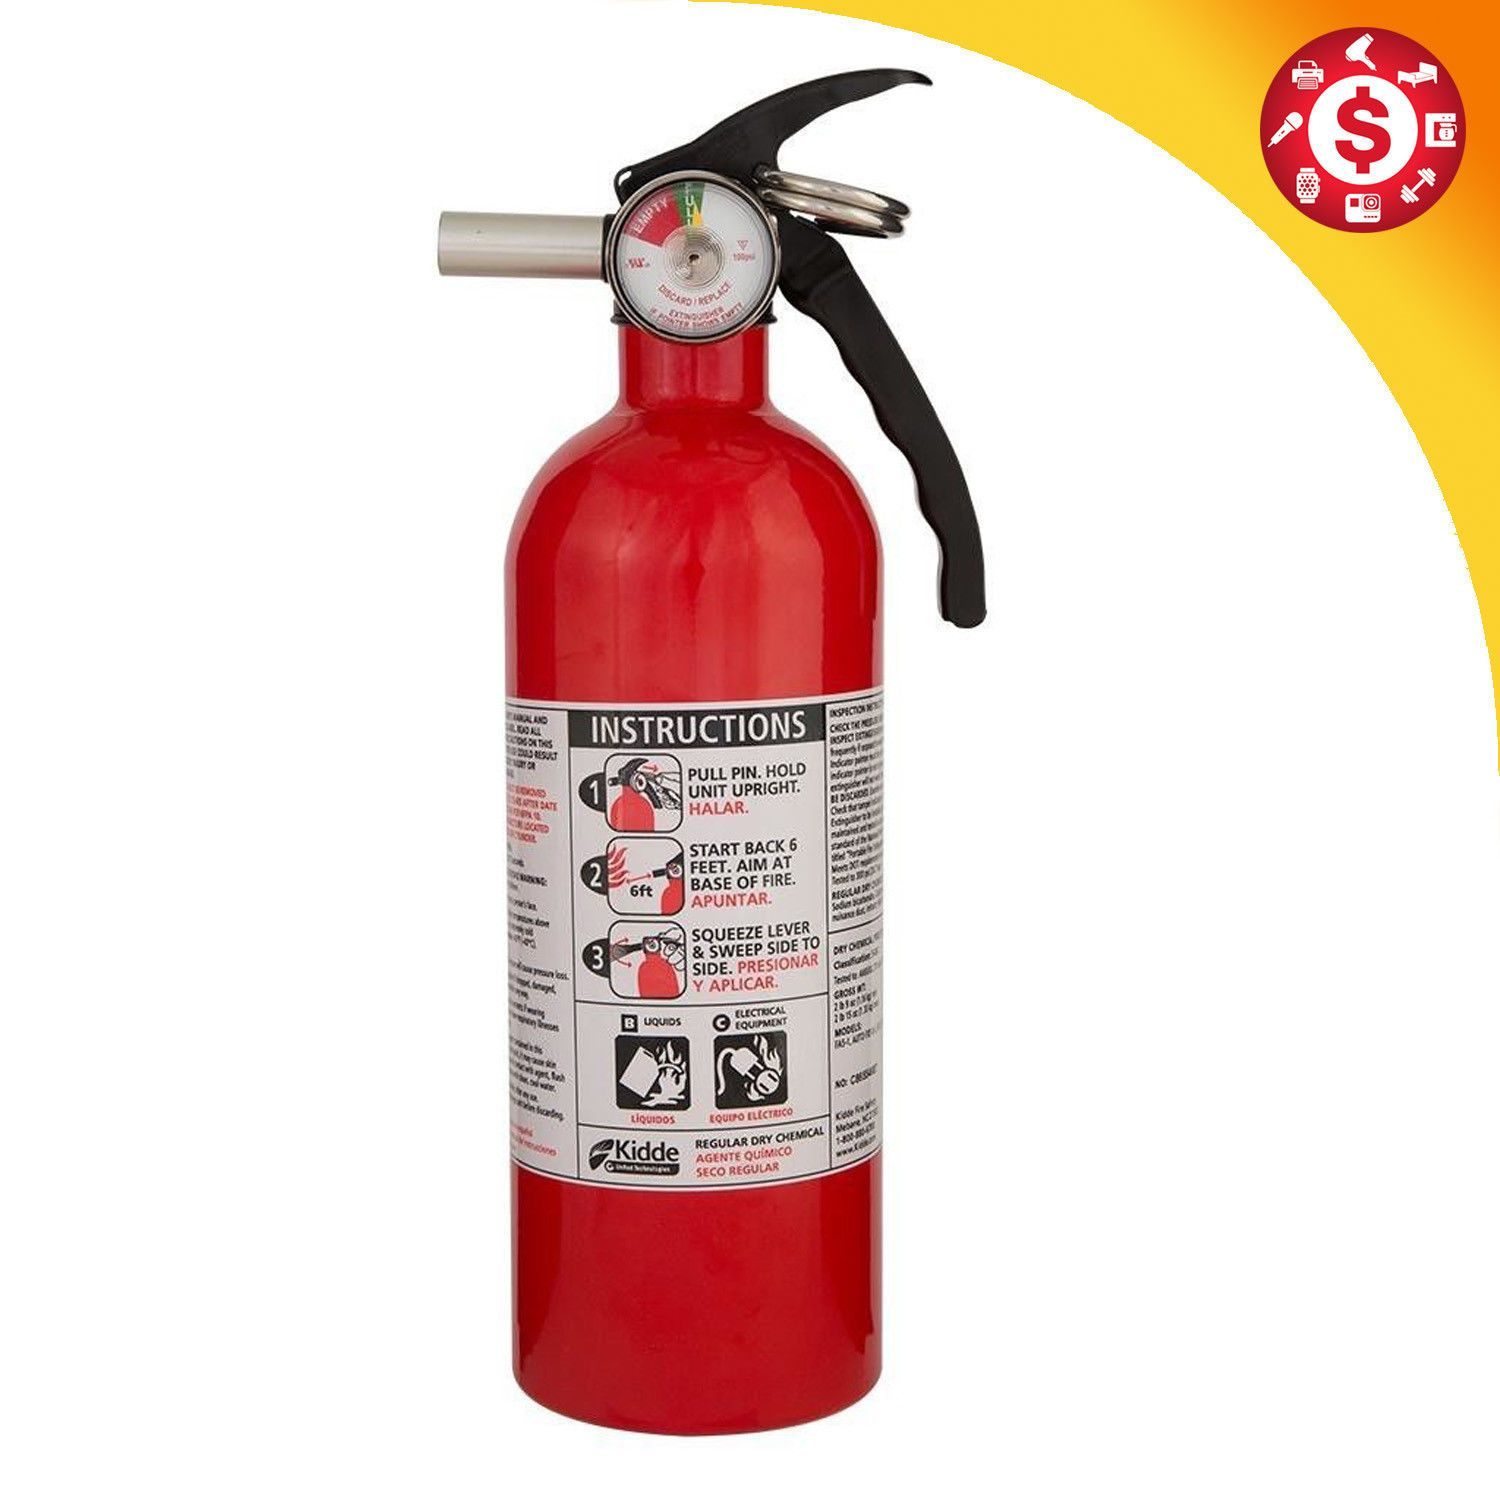 Dry Chemical Kitchen Fire Extinguisher Safety Home Car Auto